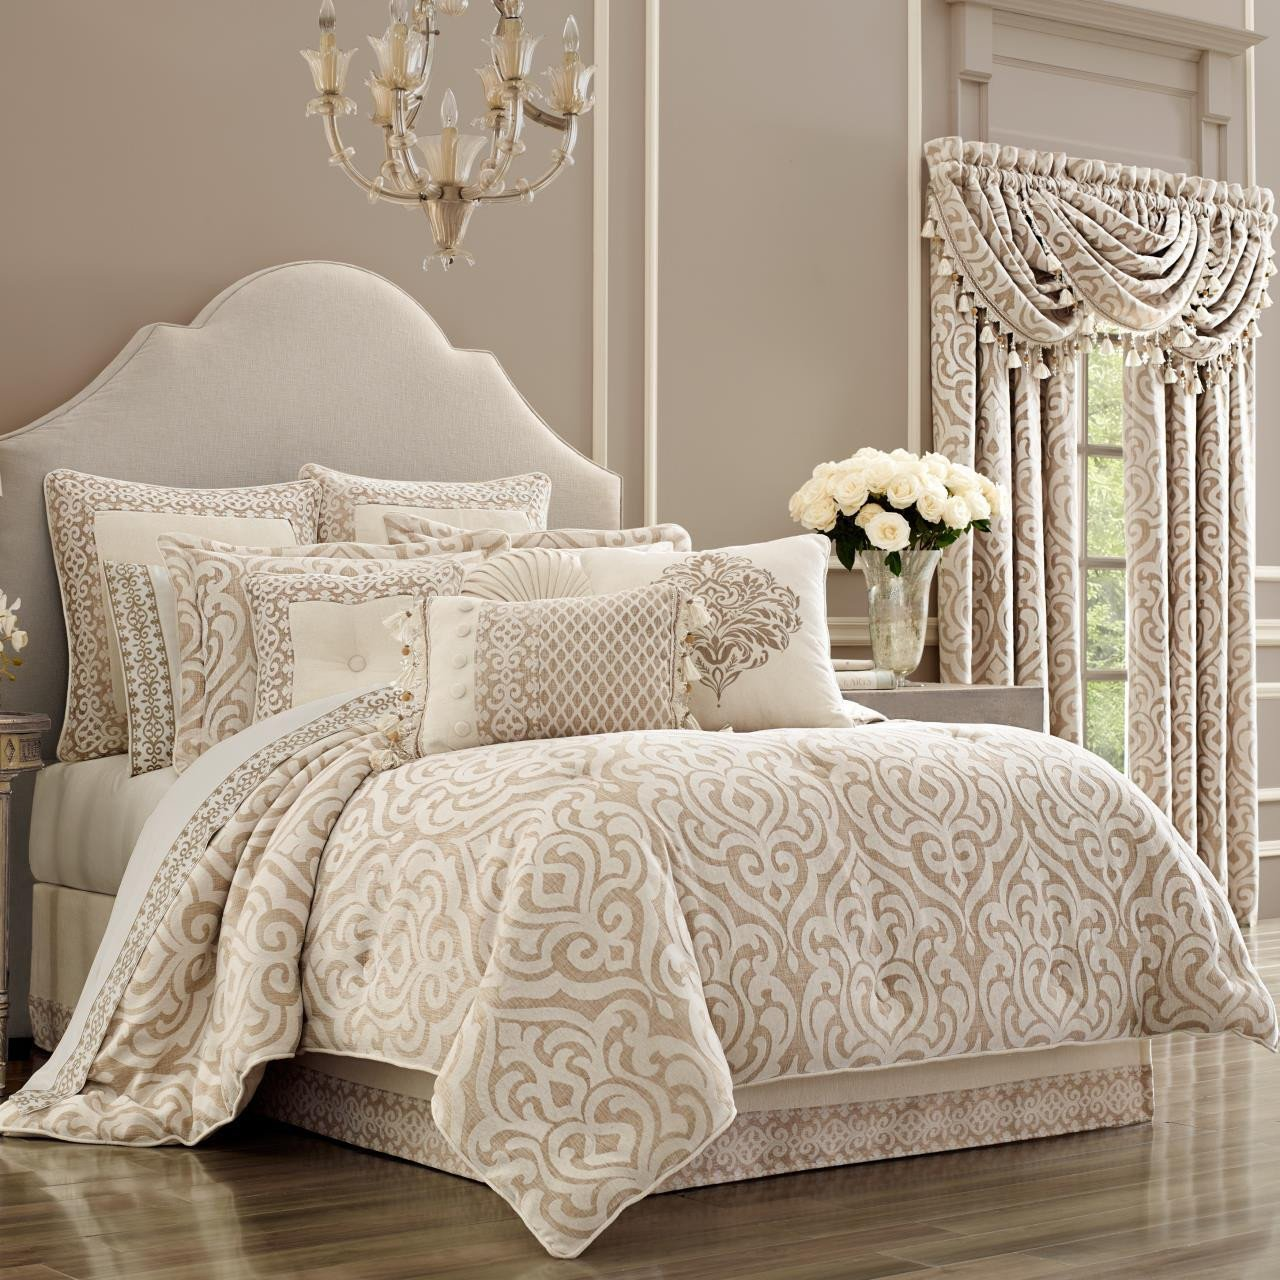 King Size Bedroom Comforter Set Lovely Milano Sand forter Collection by J Queen New York